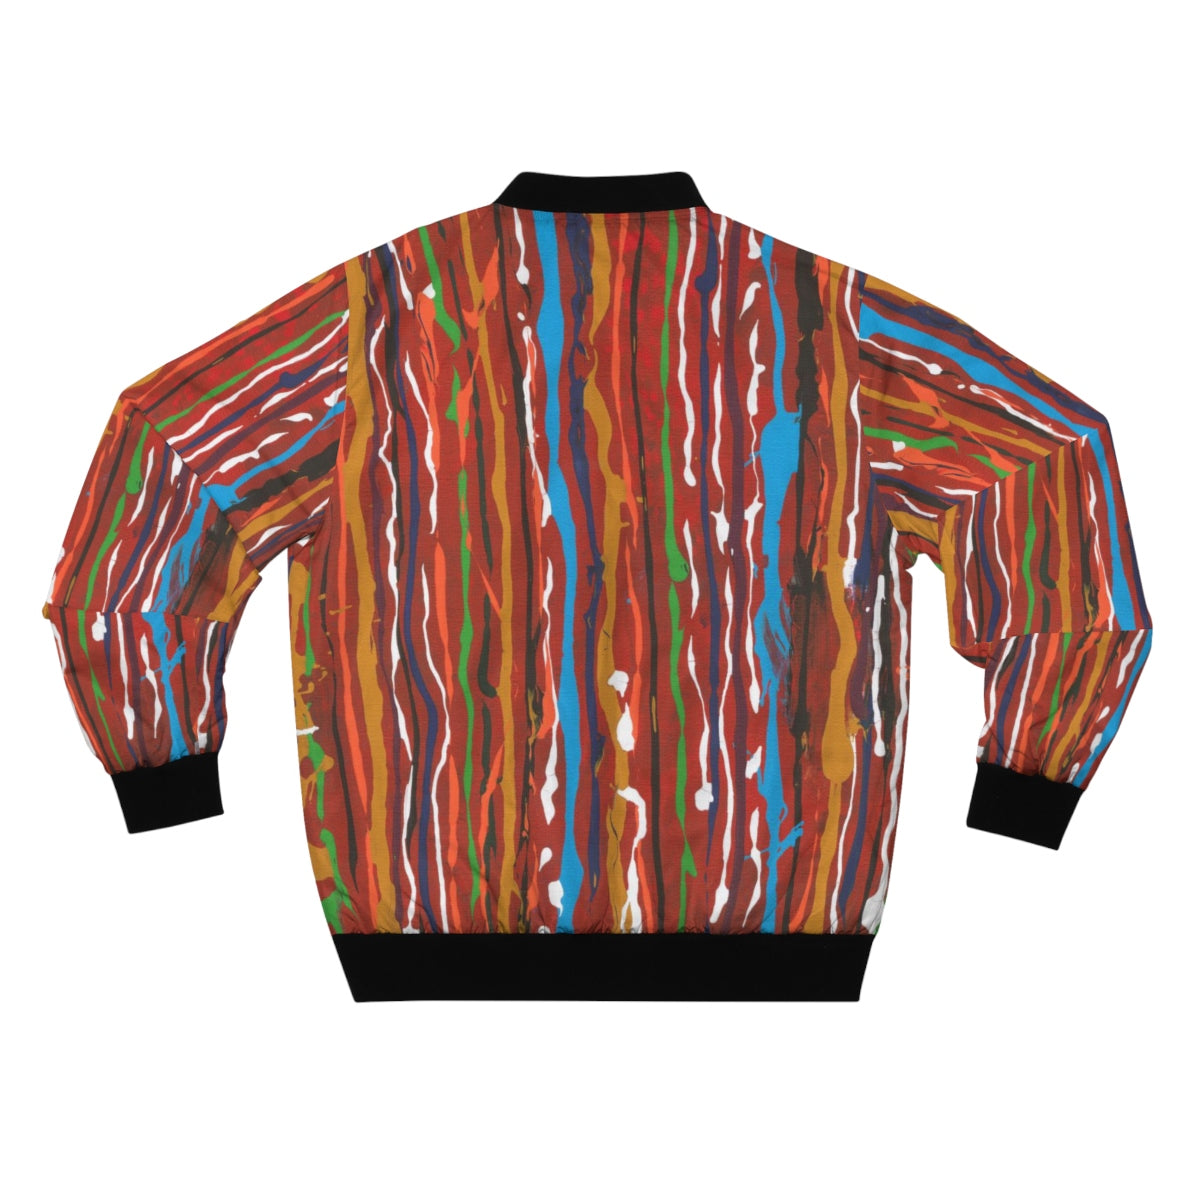 CARNIVAL UNISEX Bomber Jacket  SIZES XS - 3 XL